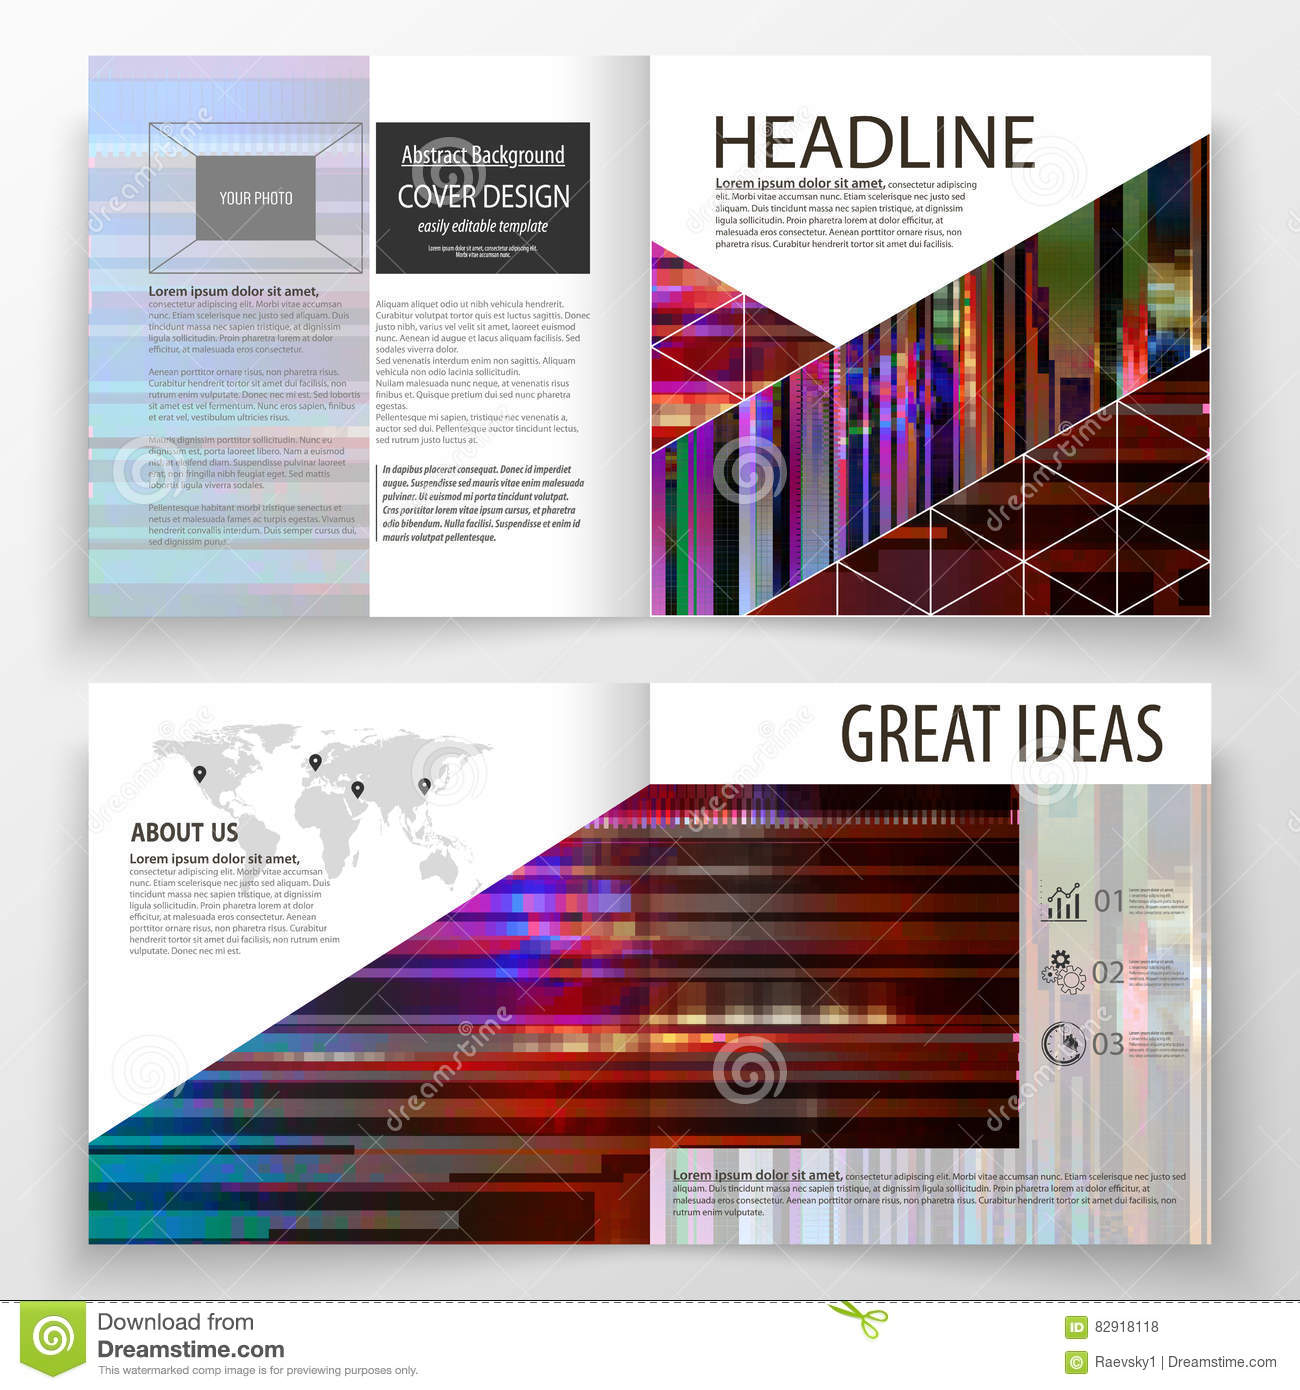 Book Cover Design Photo Elements : Glitch book cover poster template with simple geometric